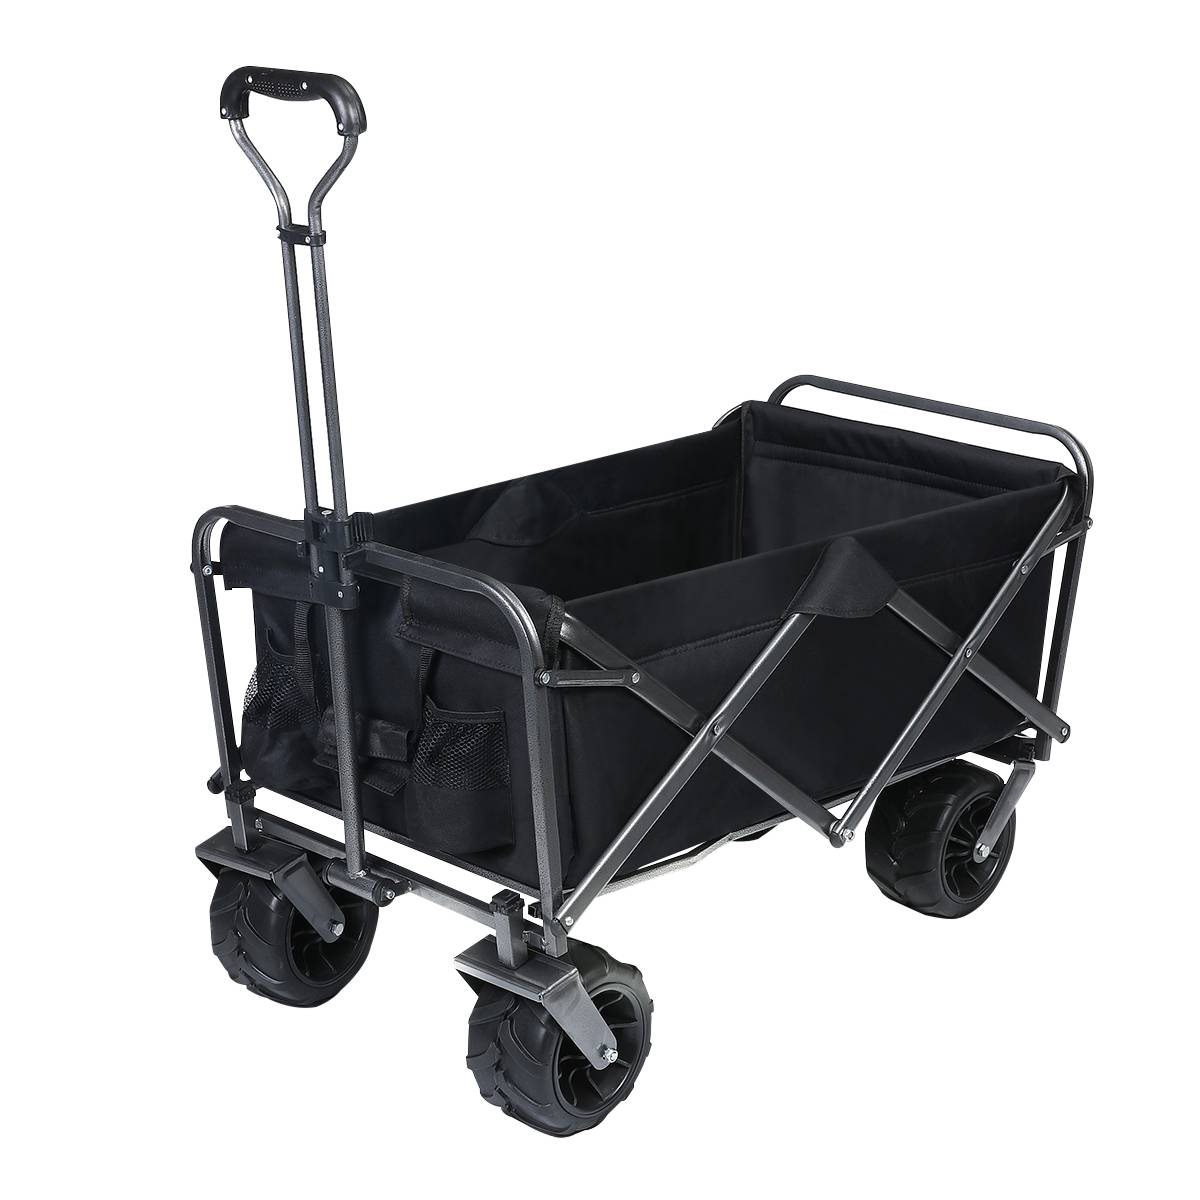 tooca Beach Wagon Collapsible Wagon Folding Utility Wagon Cart Outdoor with Wide All Terrain Wheels 265 Pound Capacity for Outdoor, Beach, Camping, Sports,